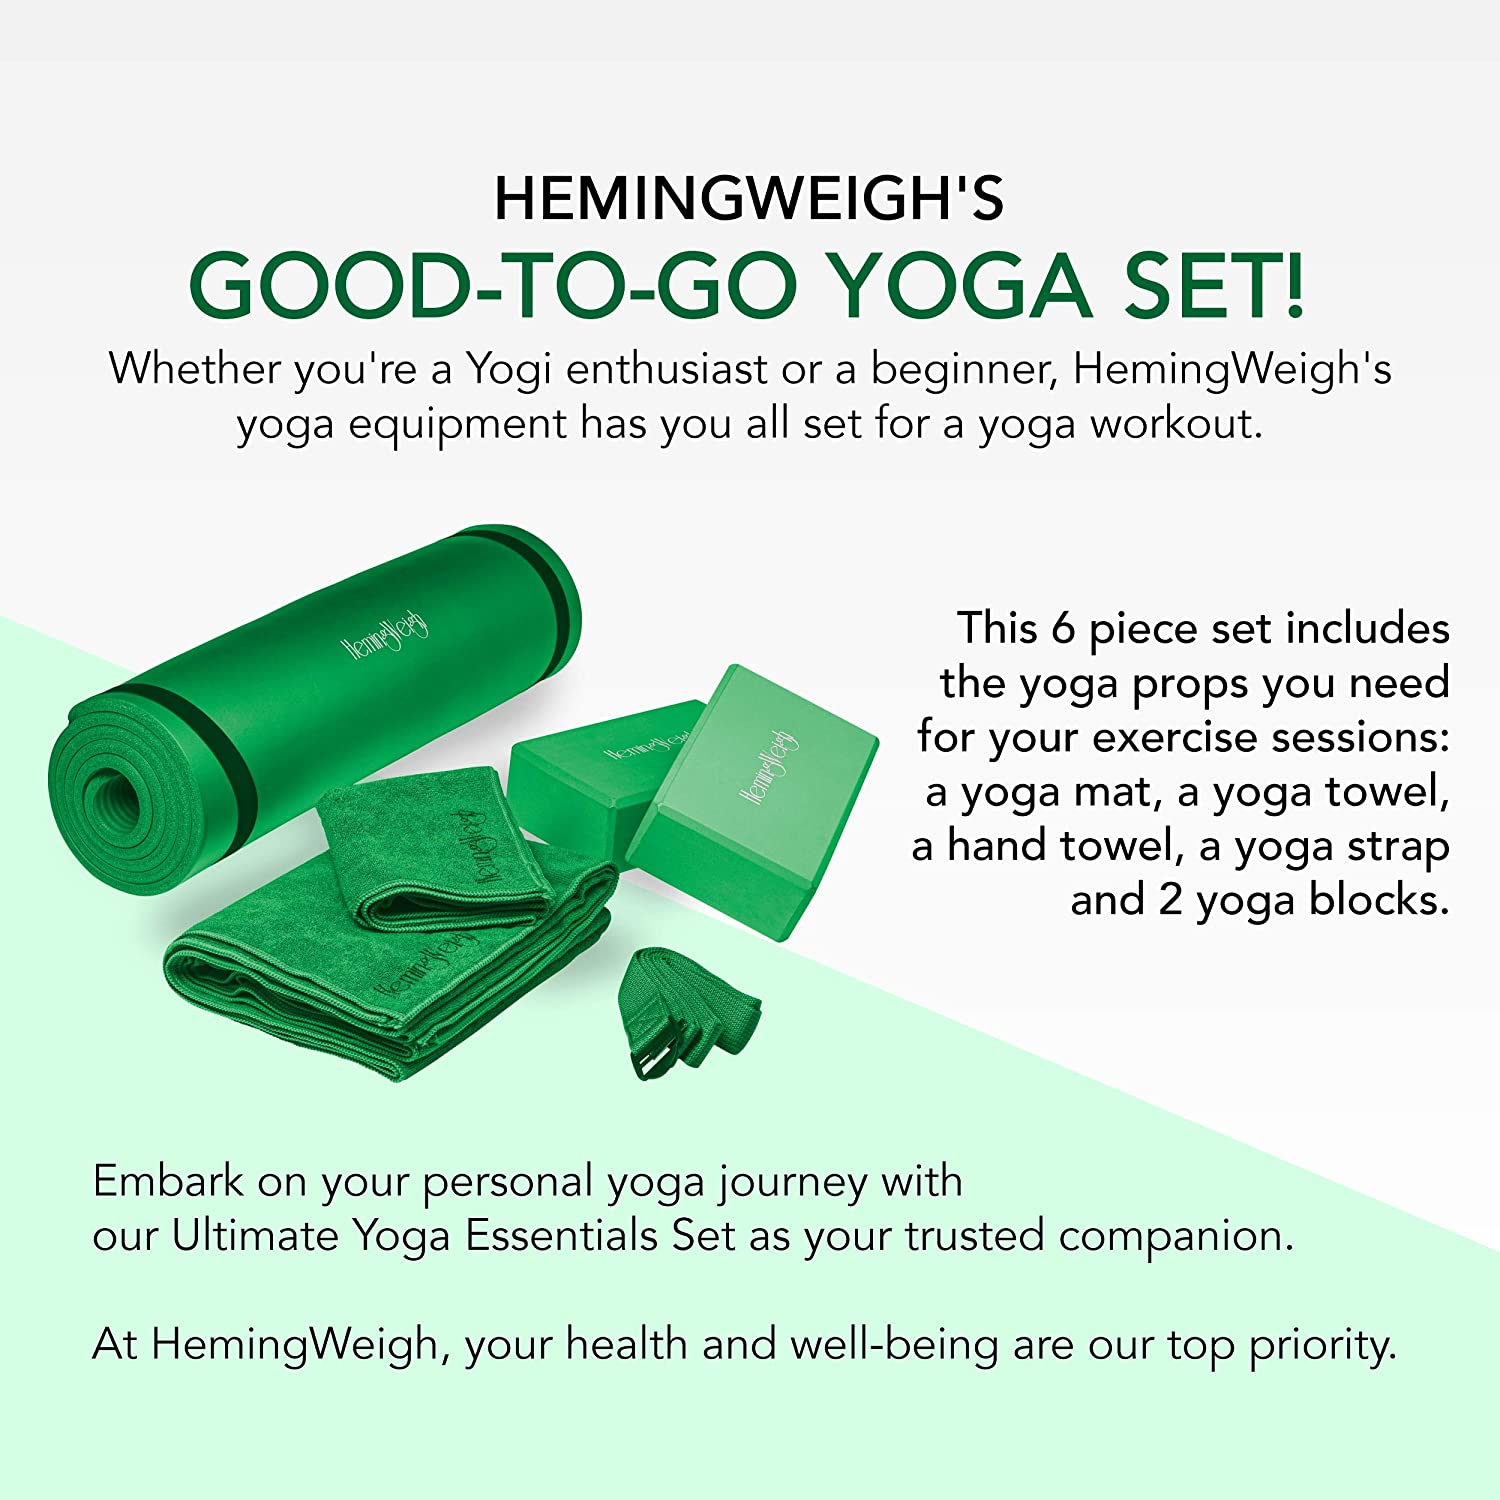 Yoga and Pilates HemingWeigh 1//2-Inch Extra Thick High Density Exercise Yoga Mat with Carrying Strap for Exercise